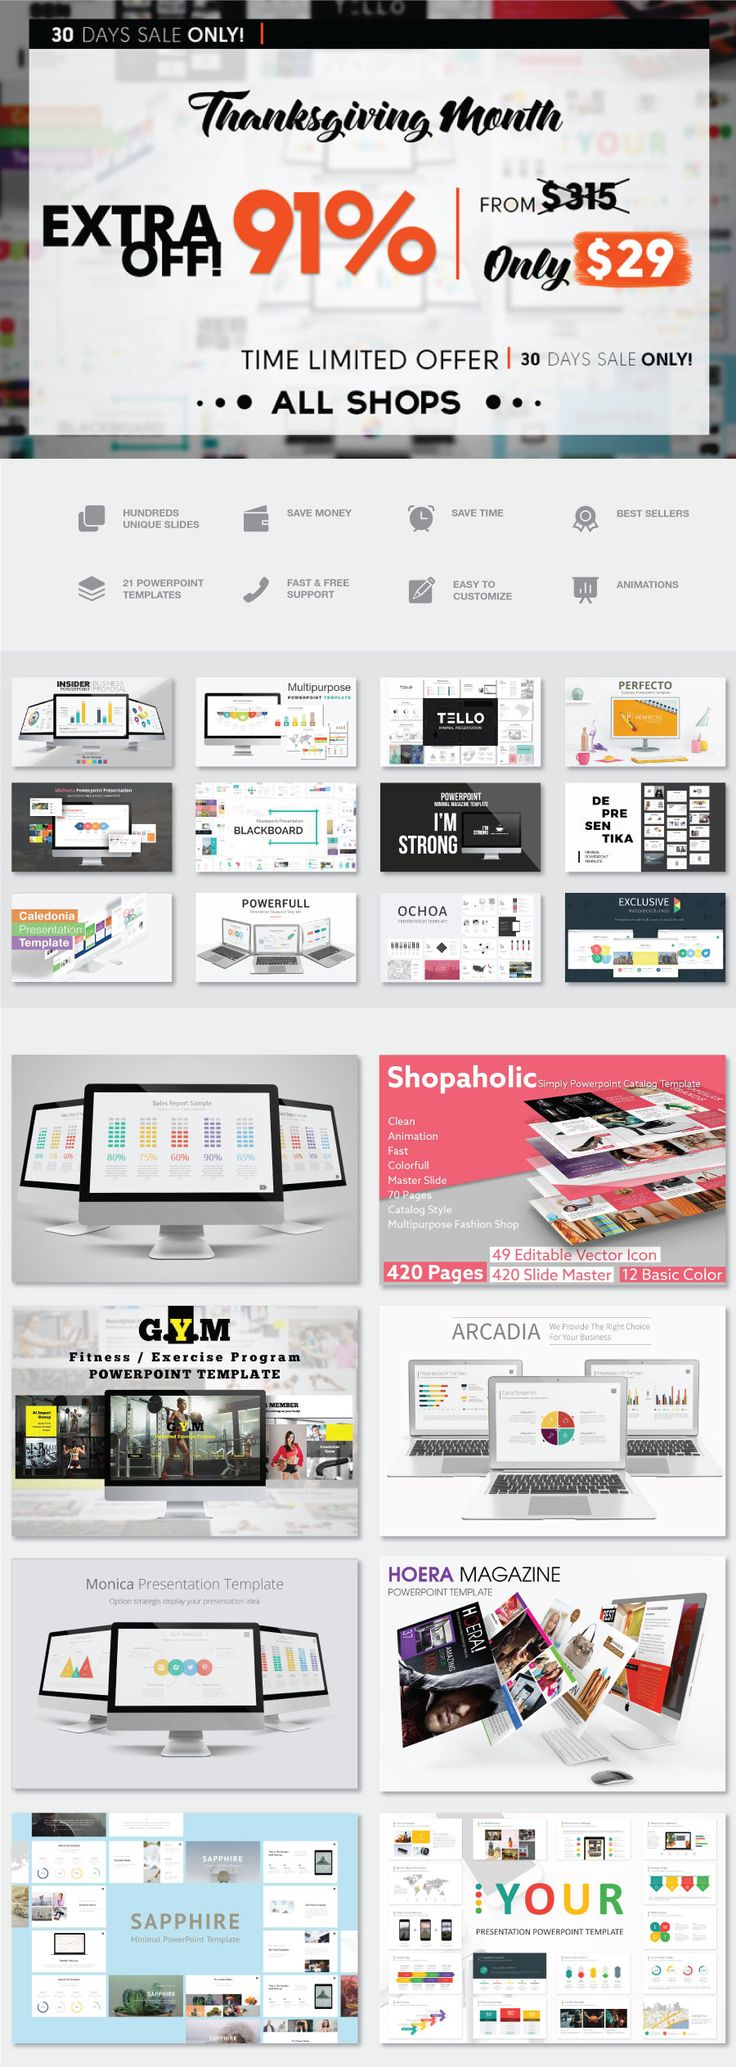 13 best free powerpoint template graphicslide images on pinterest, Presentation templates